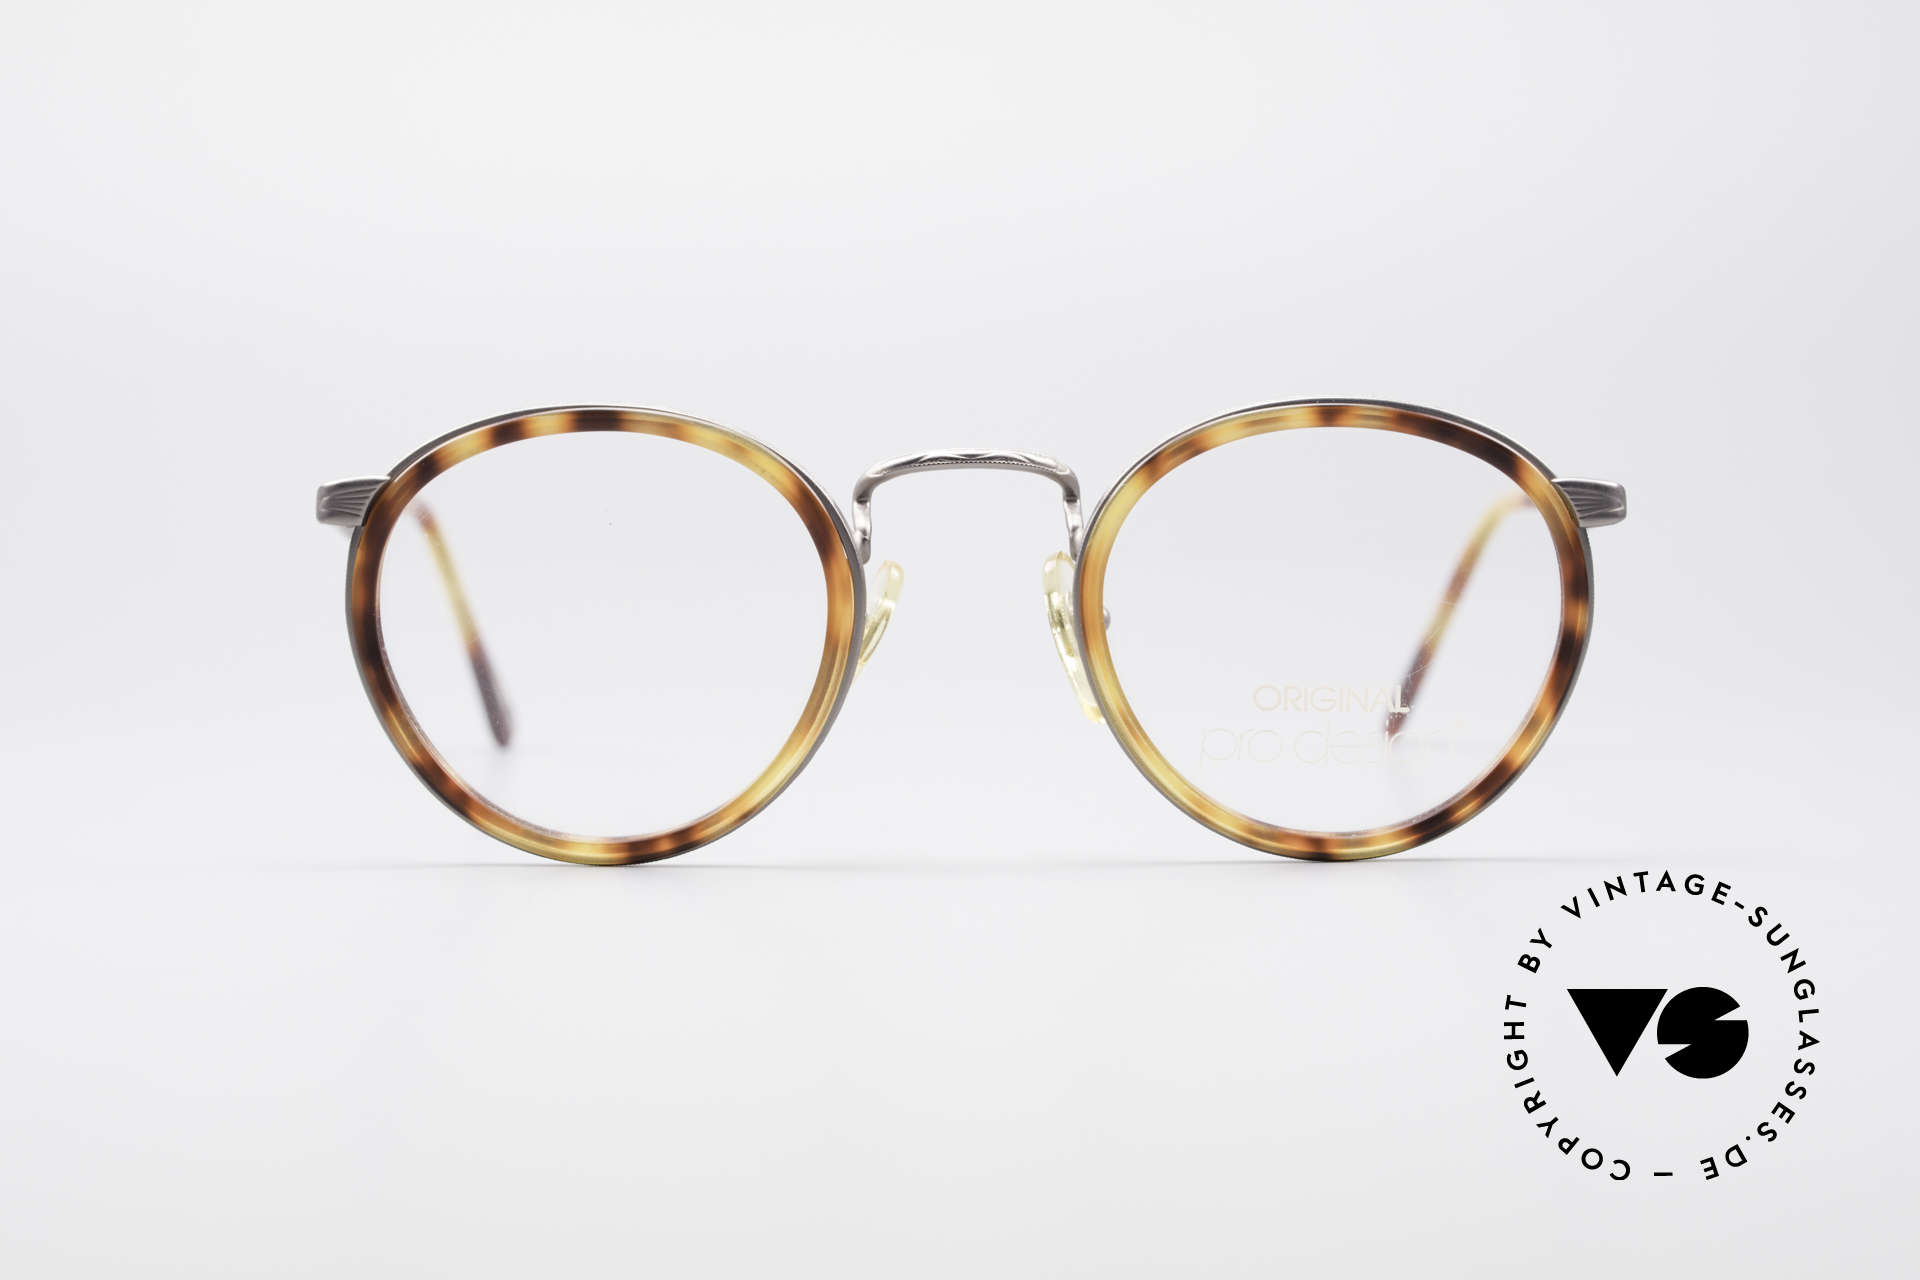 ProDesign Denmark Club 55C Panto Glasses, panto design with windsor rings: a true CLASSIC!, Made for Men